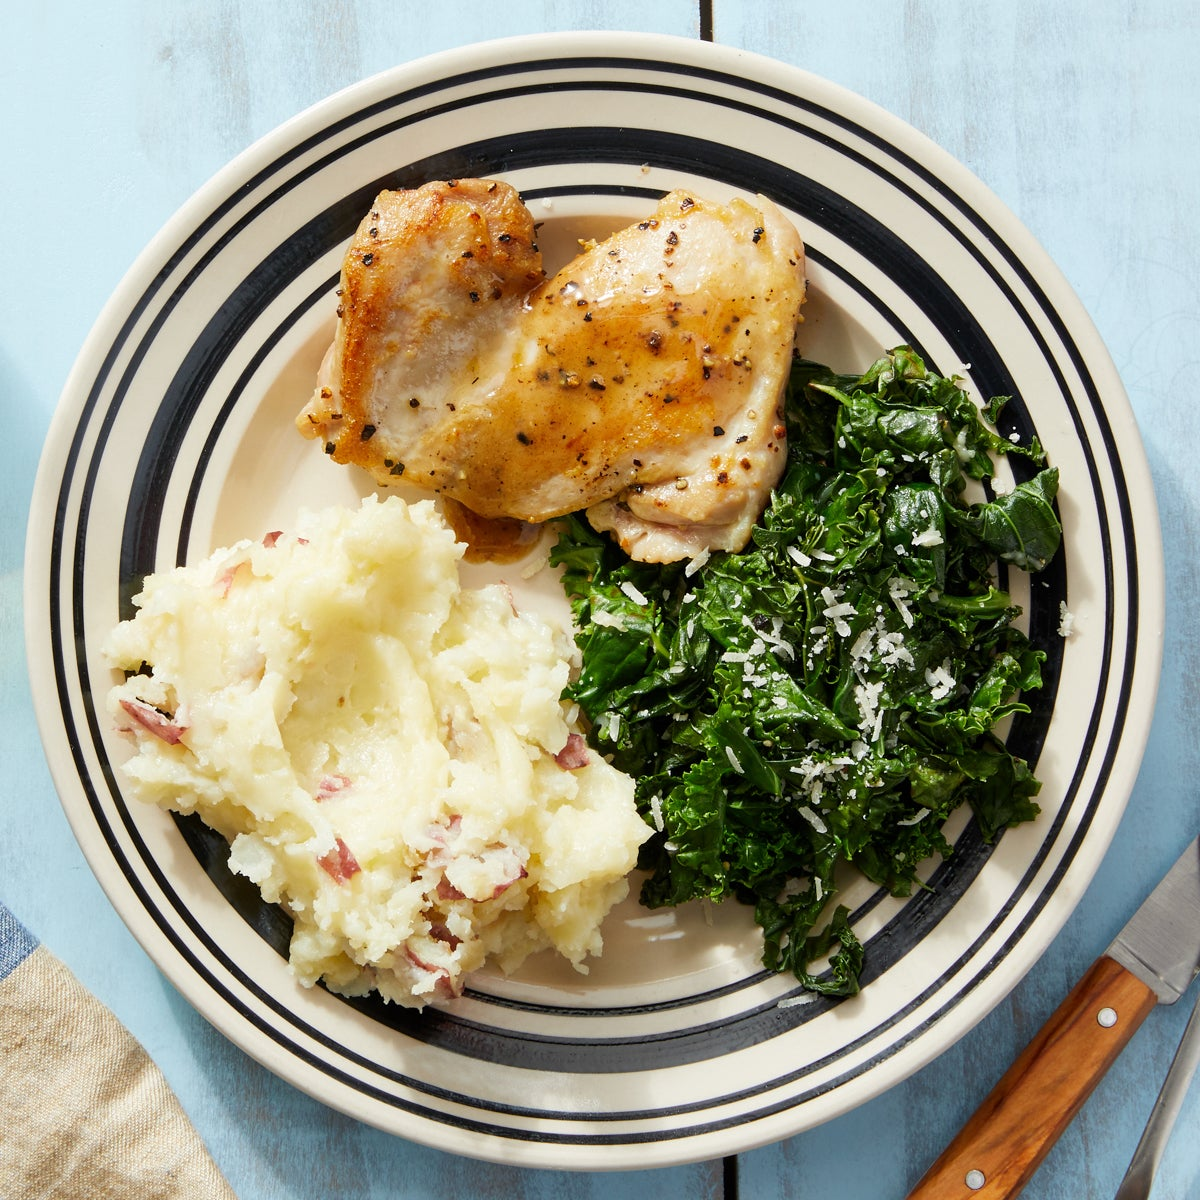 Seared Chicken Thighs & Lemon-Butter Sauce with Fontina Mashed Potatoes & Garlic Kale